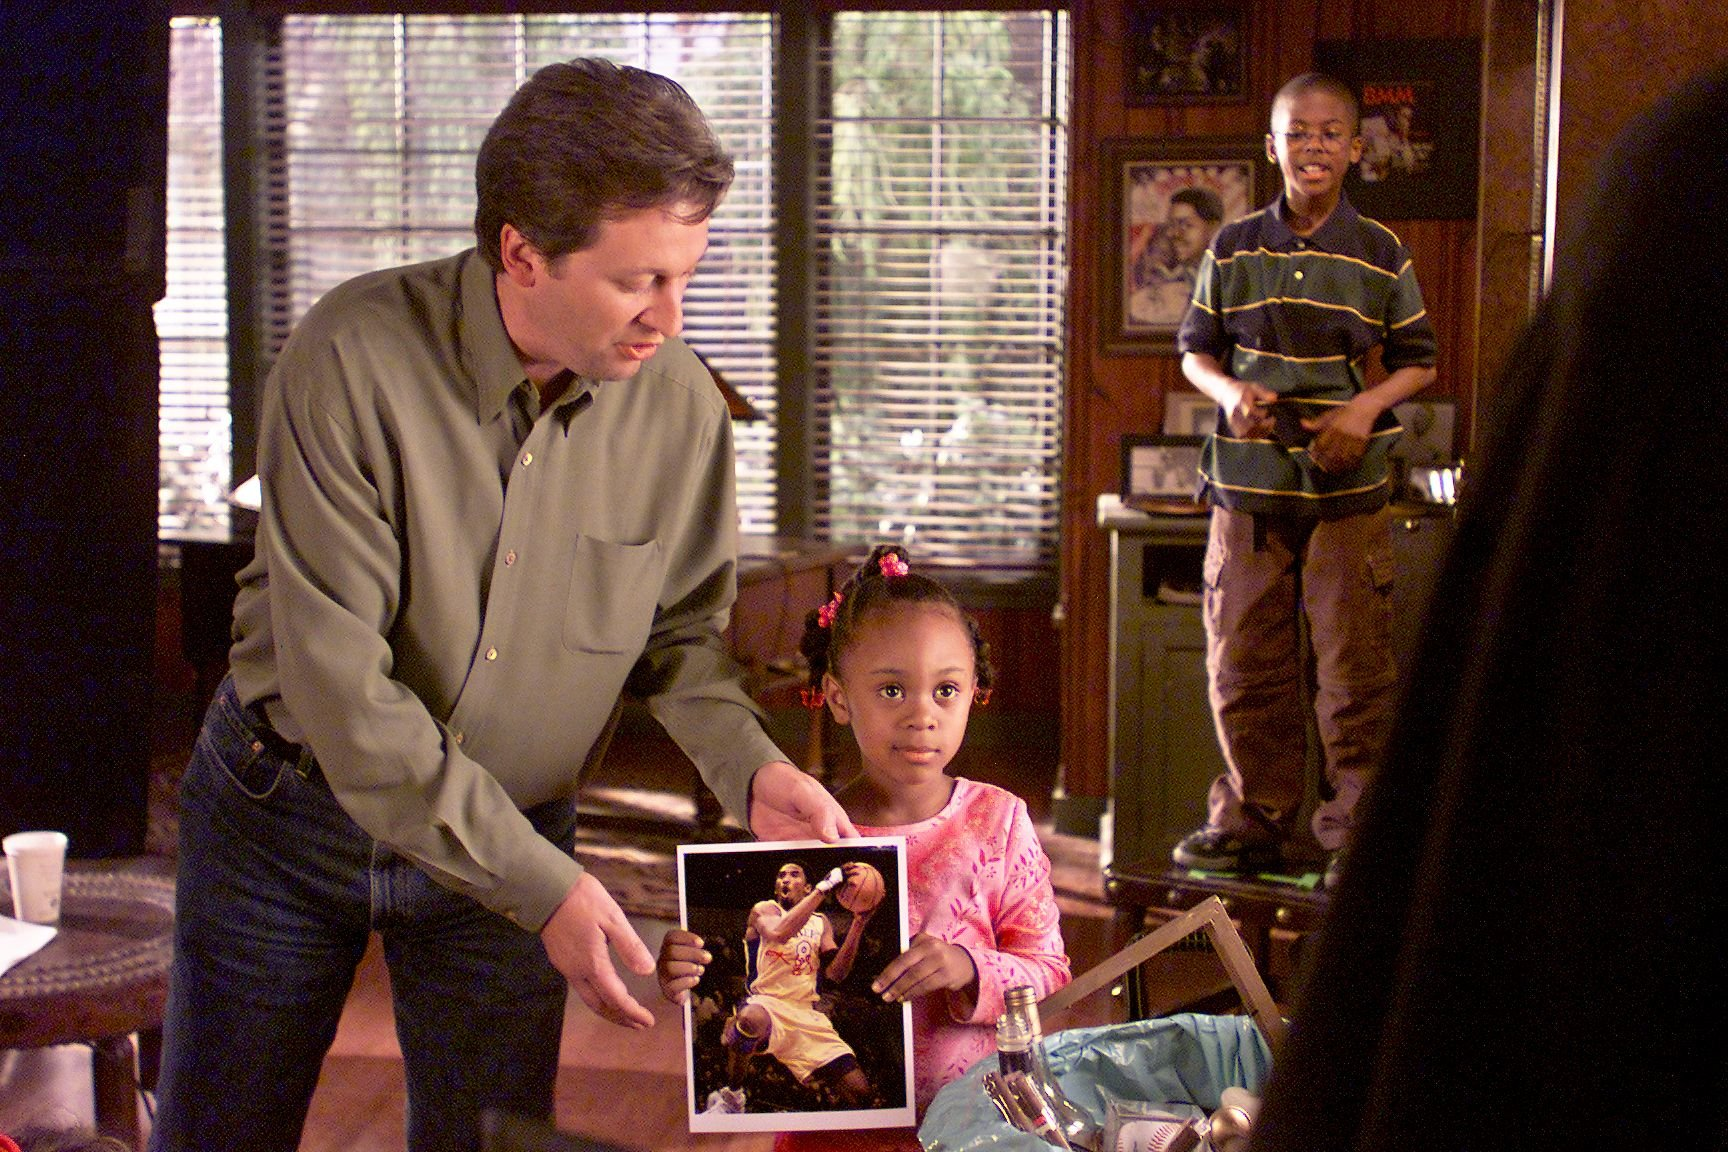 """Dee Dee Davis, 6, as Bryana, with an autographed picture of Kobe Bryant on the set of """"The Bernie Mac Show"""" 